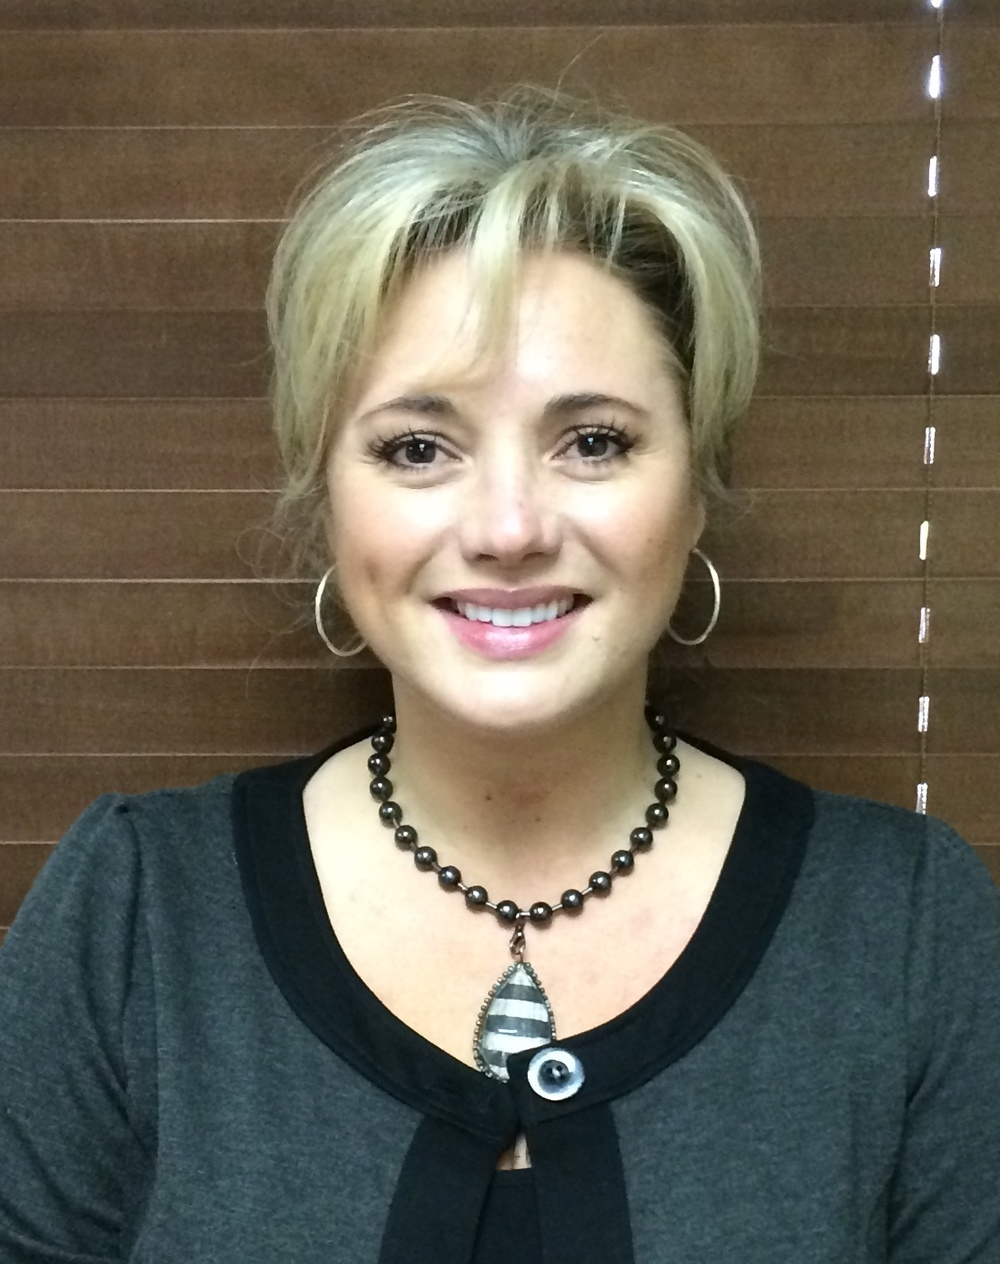 Jill is a business administrator and registered dental hygienist at Robert Wiggins DDS.